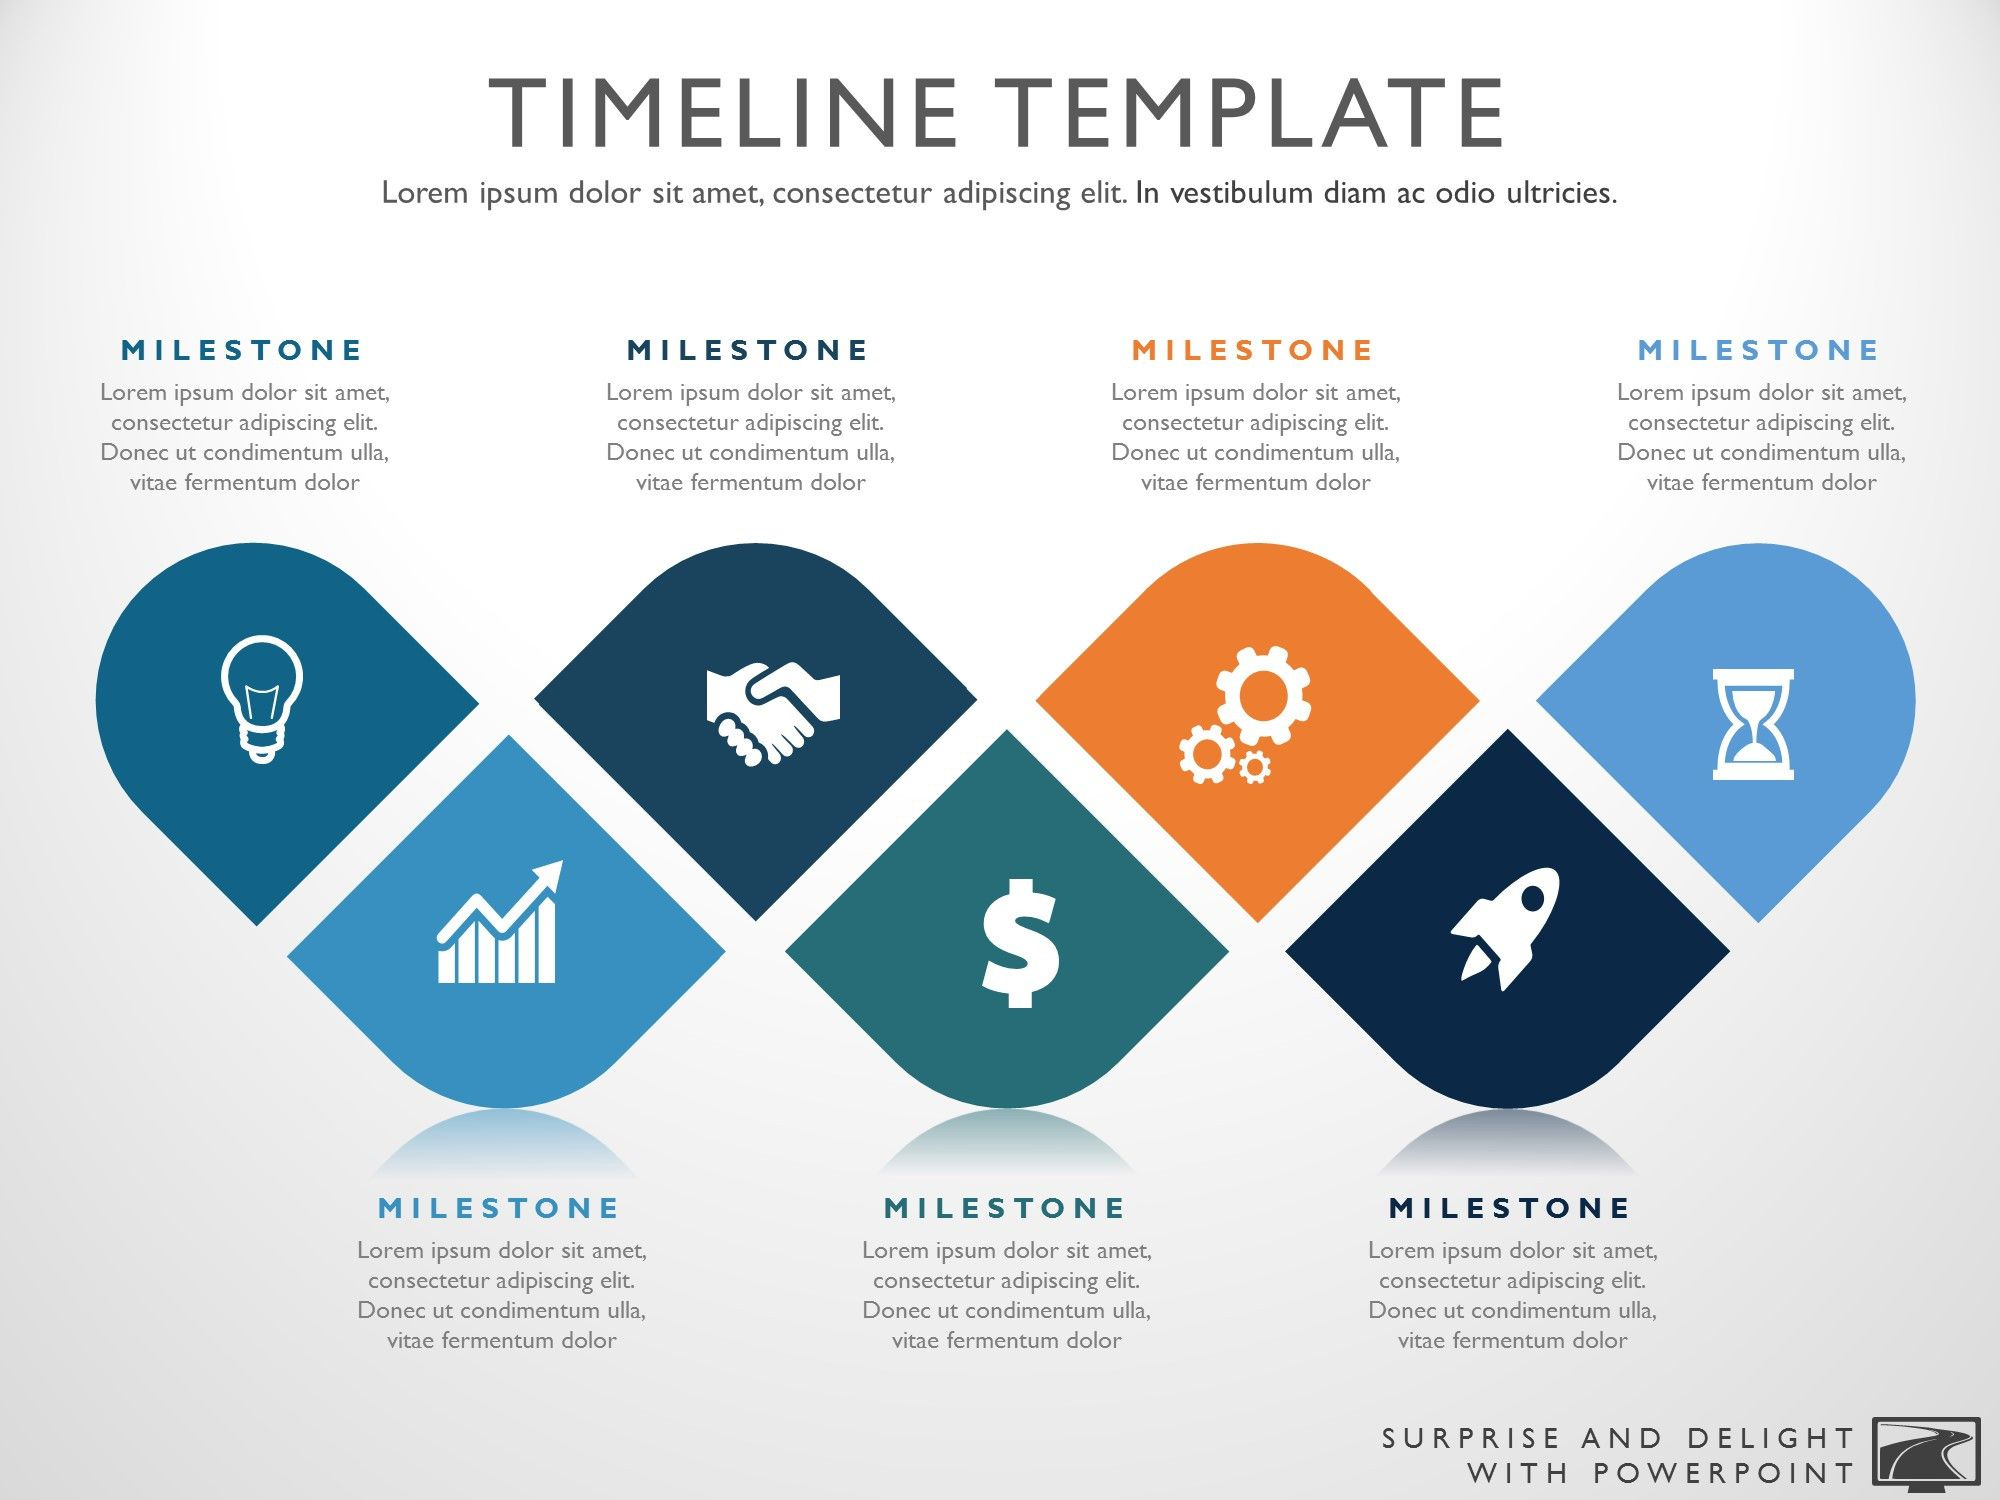 Timeline Template – My Product Roadmap | Web + Design ...